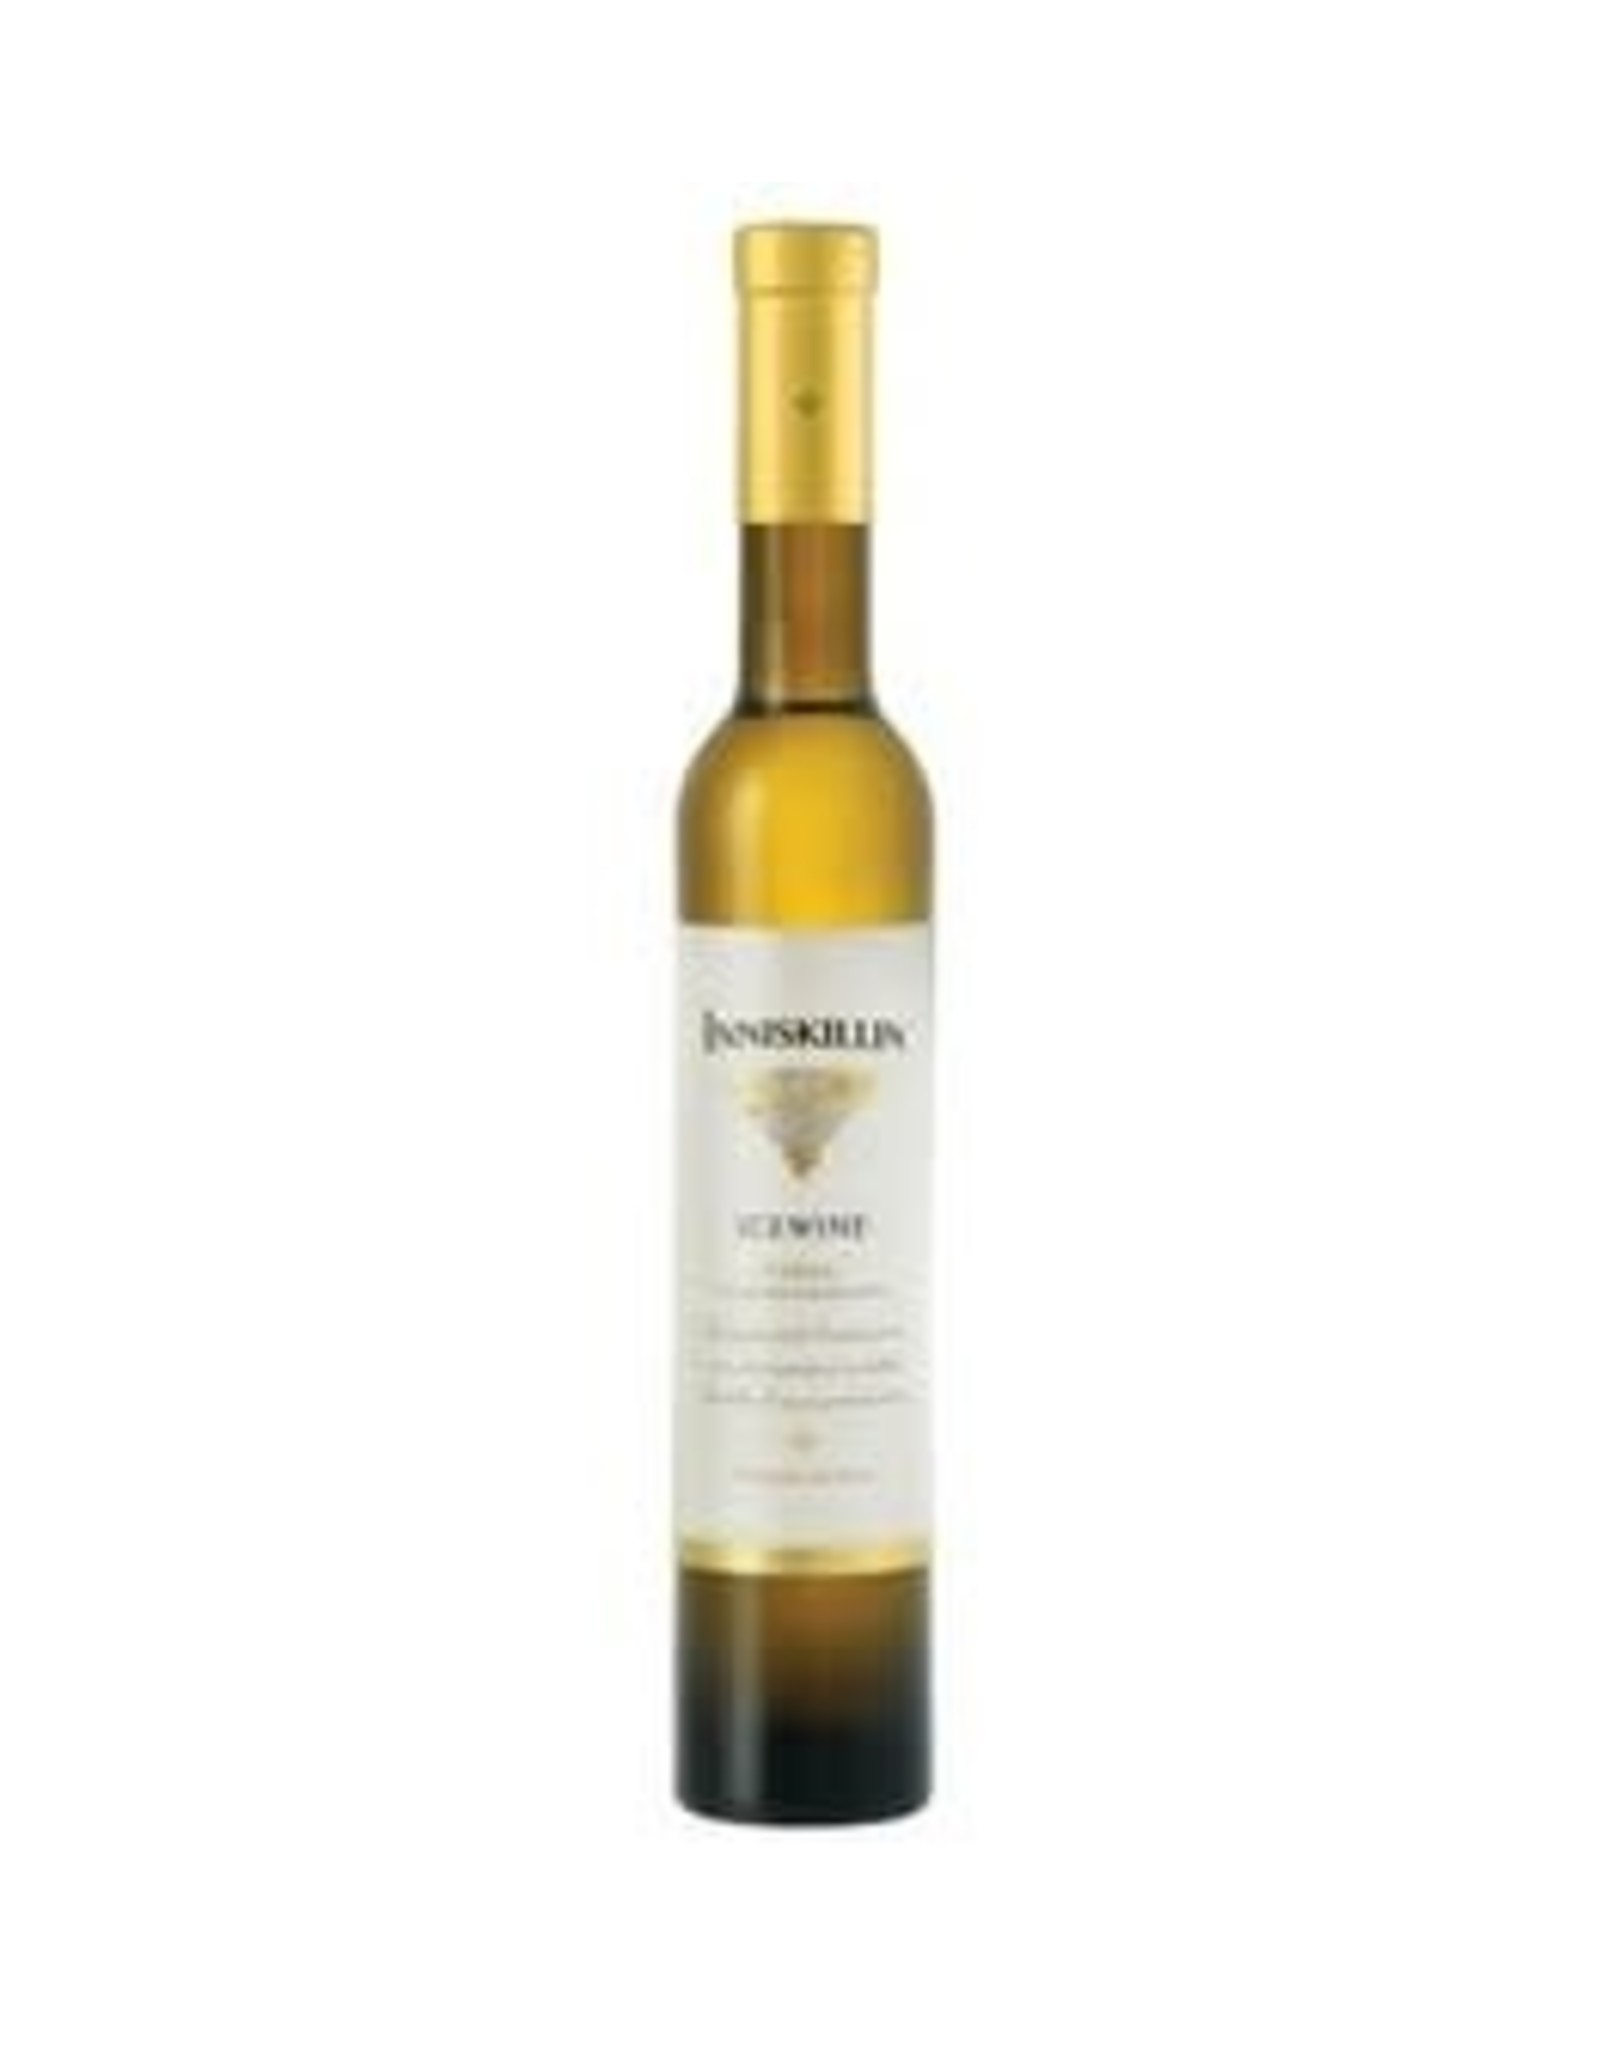 DULCE VENGANZA SWEET ICE WINE 2014 750ML